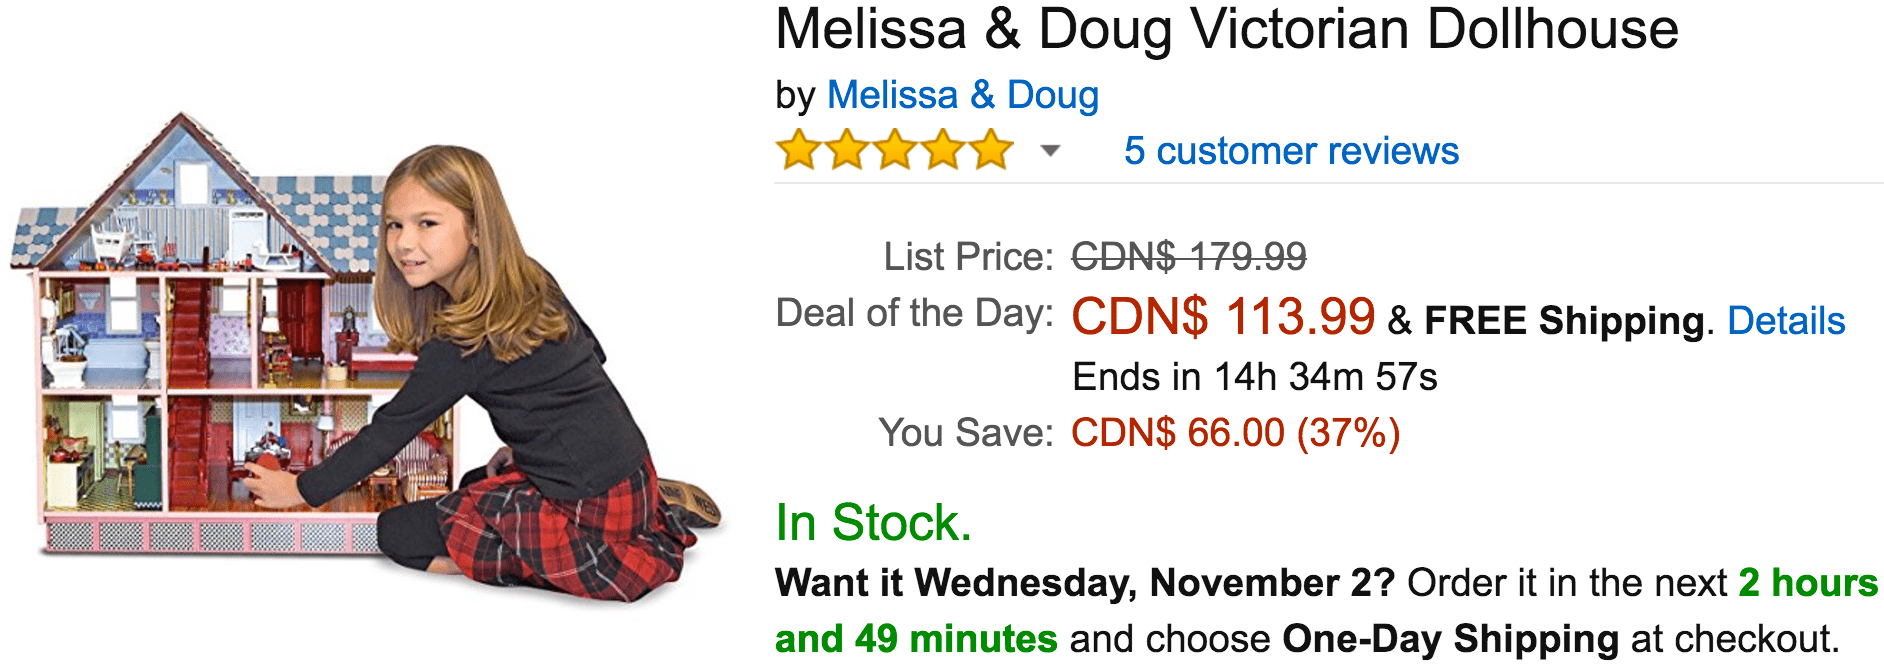 Amazon Canada Deals Of The Day: Save 37% On Melissa & Doug Victorian Dollhouse, 28% on Evenflo Infant Car Seat